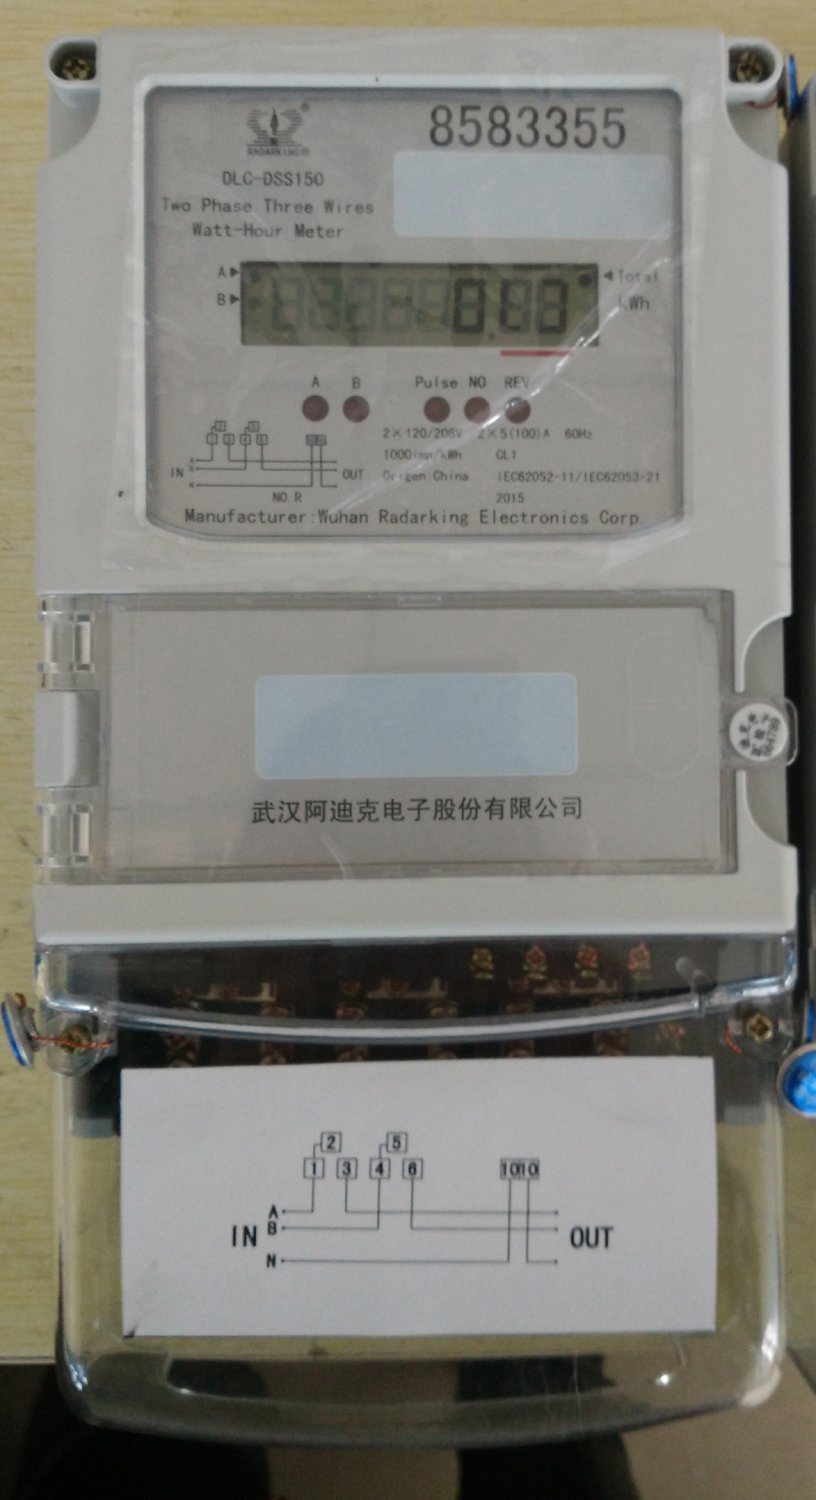 China Two Phase Three Wire Electric Meter - China Electronic Meter ...